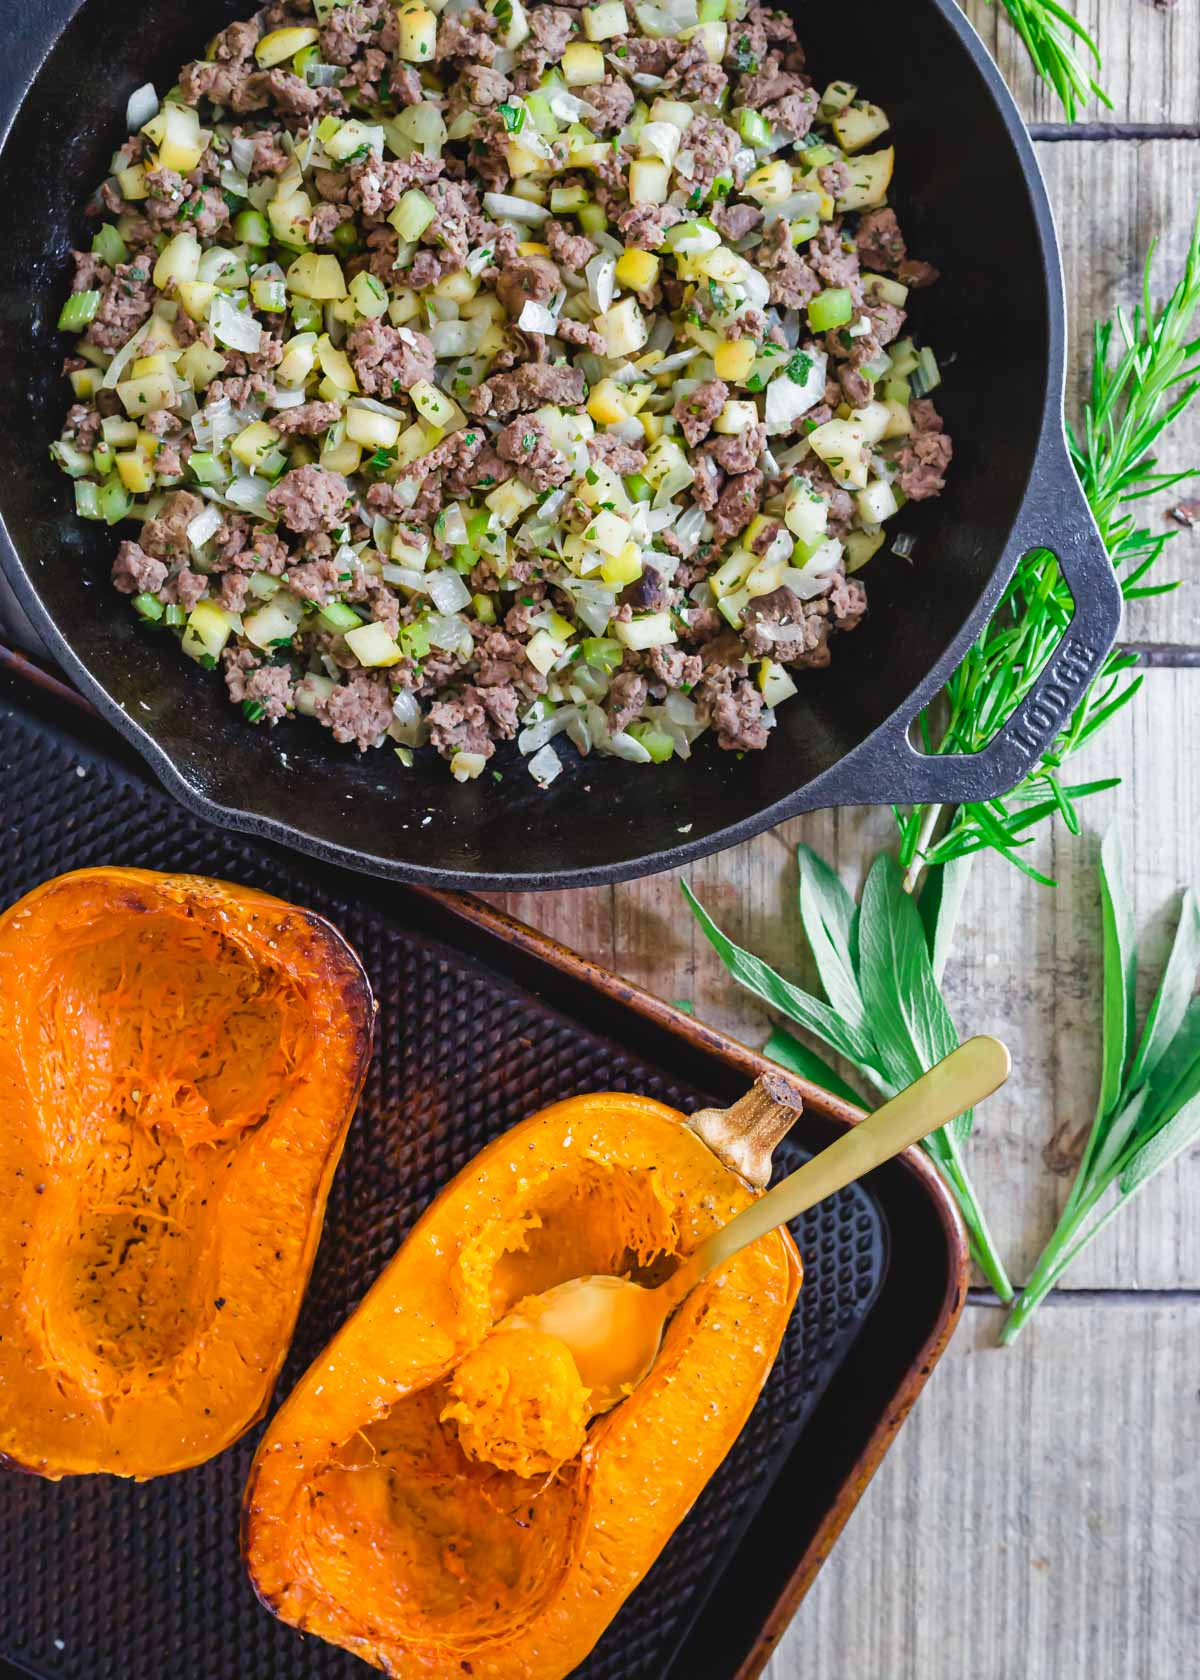 Ground meat with apples, onions, celery and rosemary to stuff roasted honeynut squash.